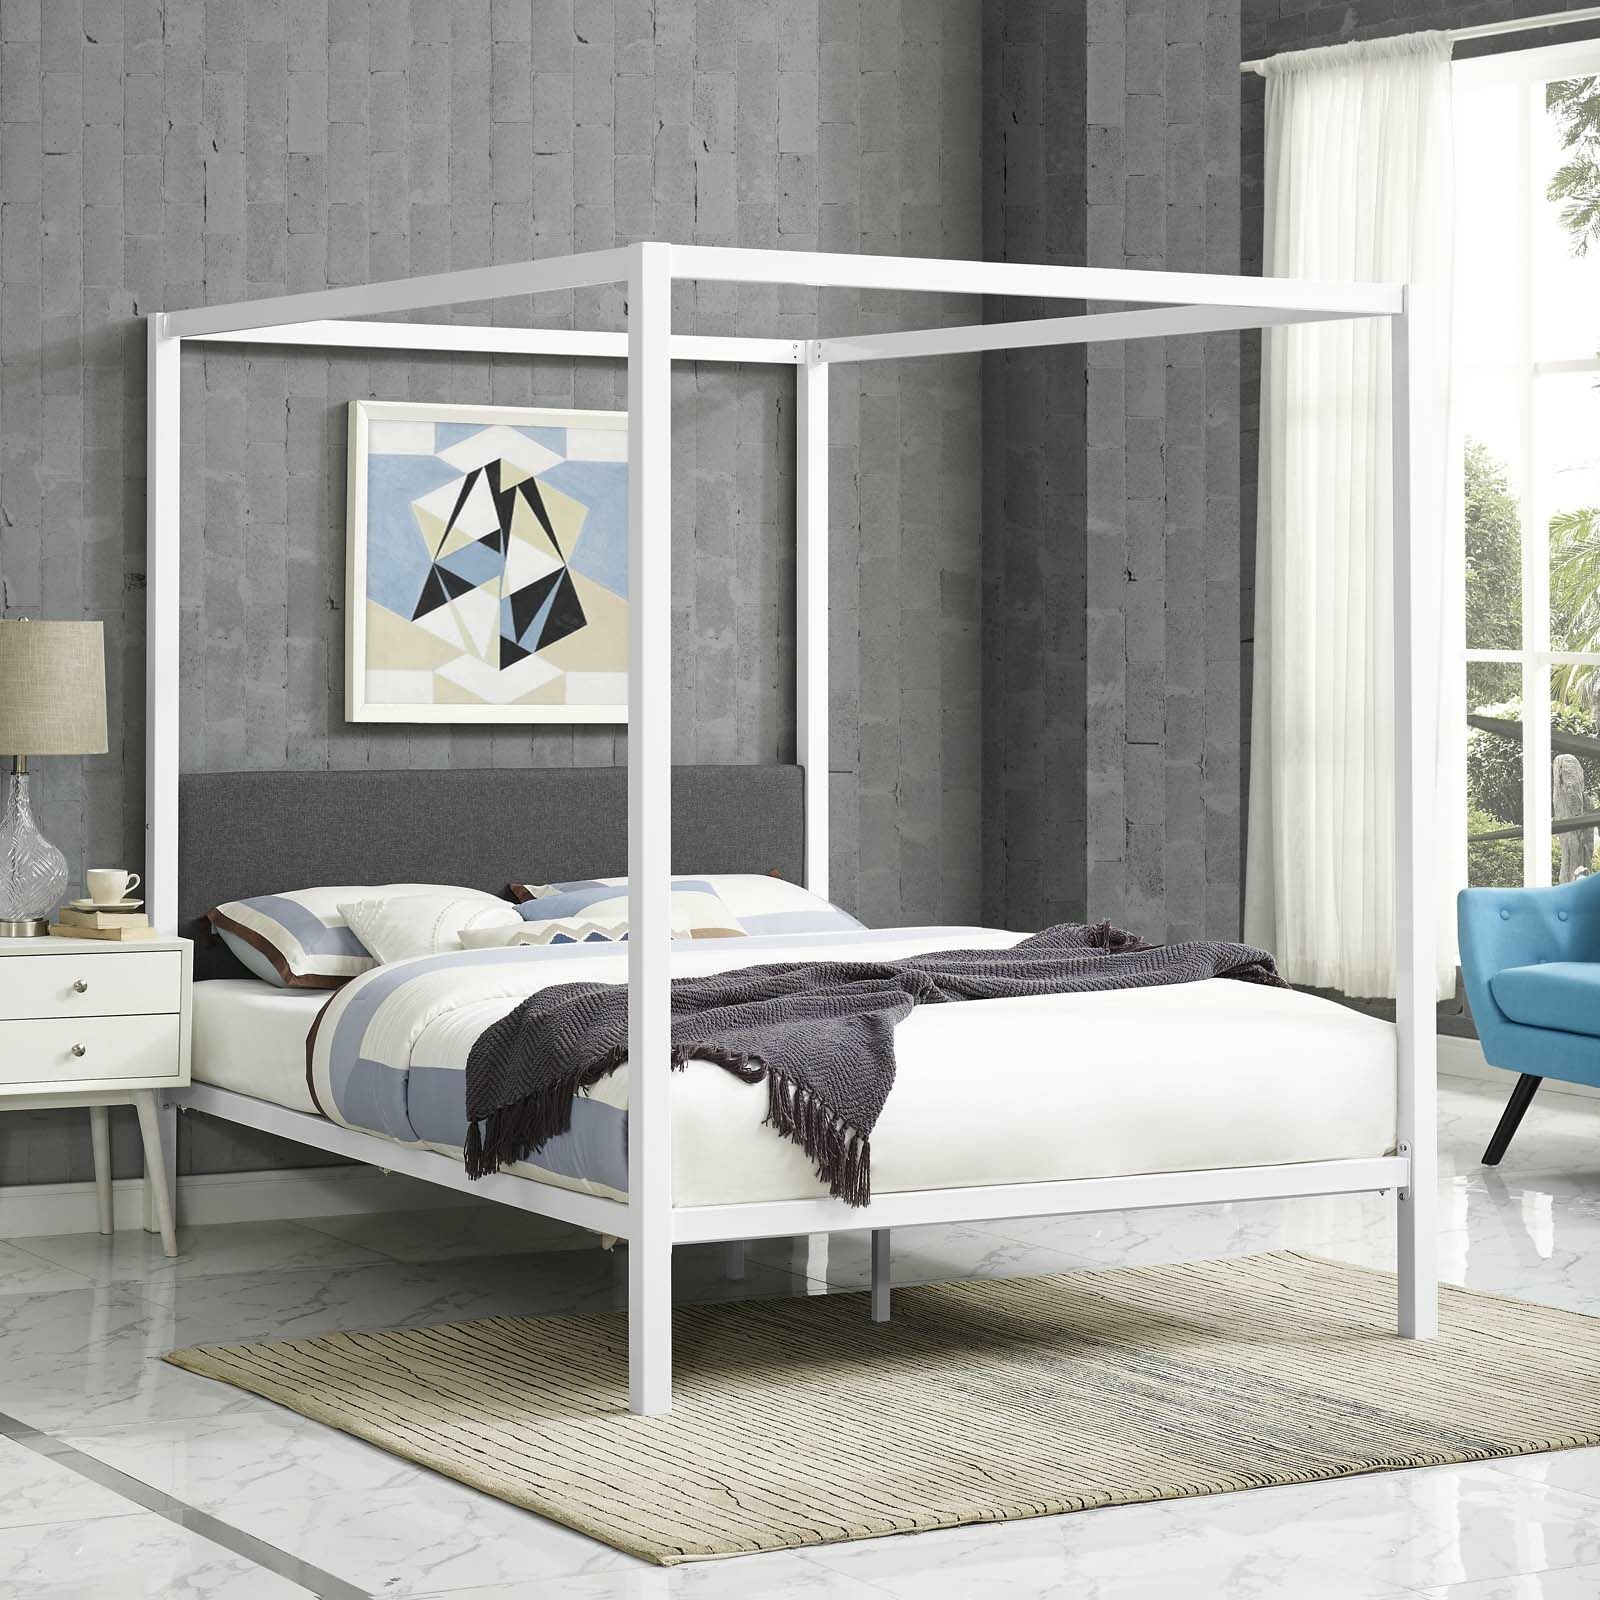 Ferro Canopy Bed Frame Color: White/Gray